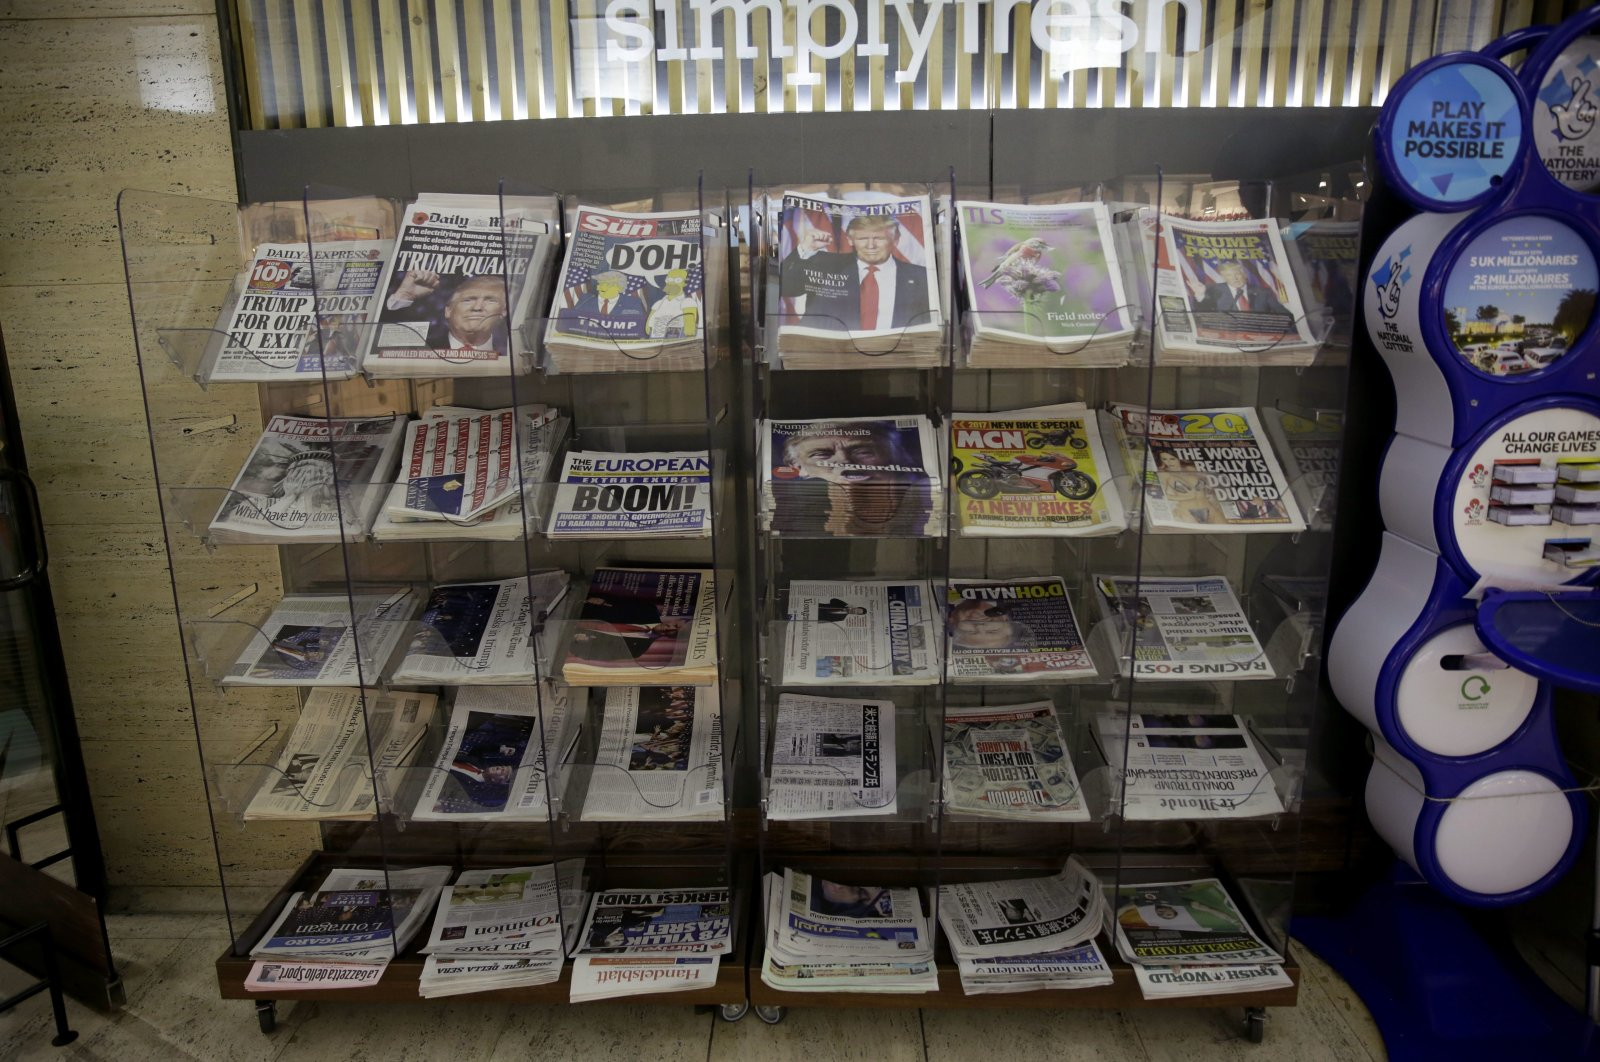 Newspapers are displayed for sale outside a store in London, Thursday, Nov. 10, 2016. (AP Photo)